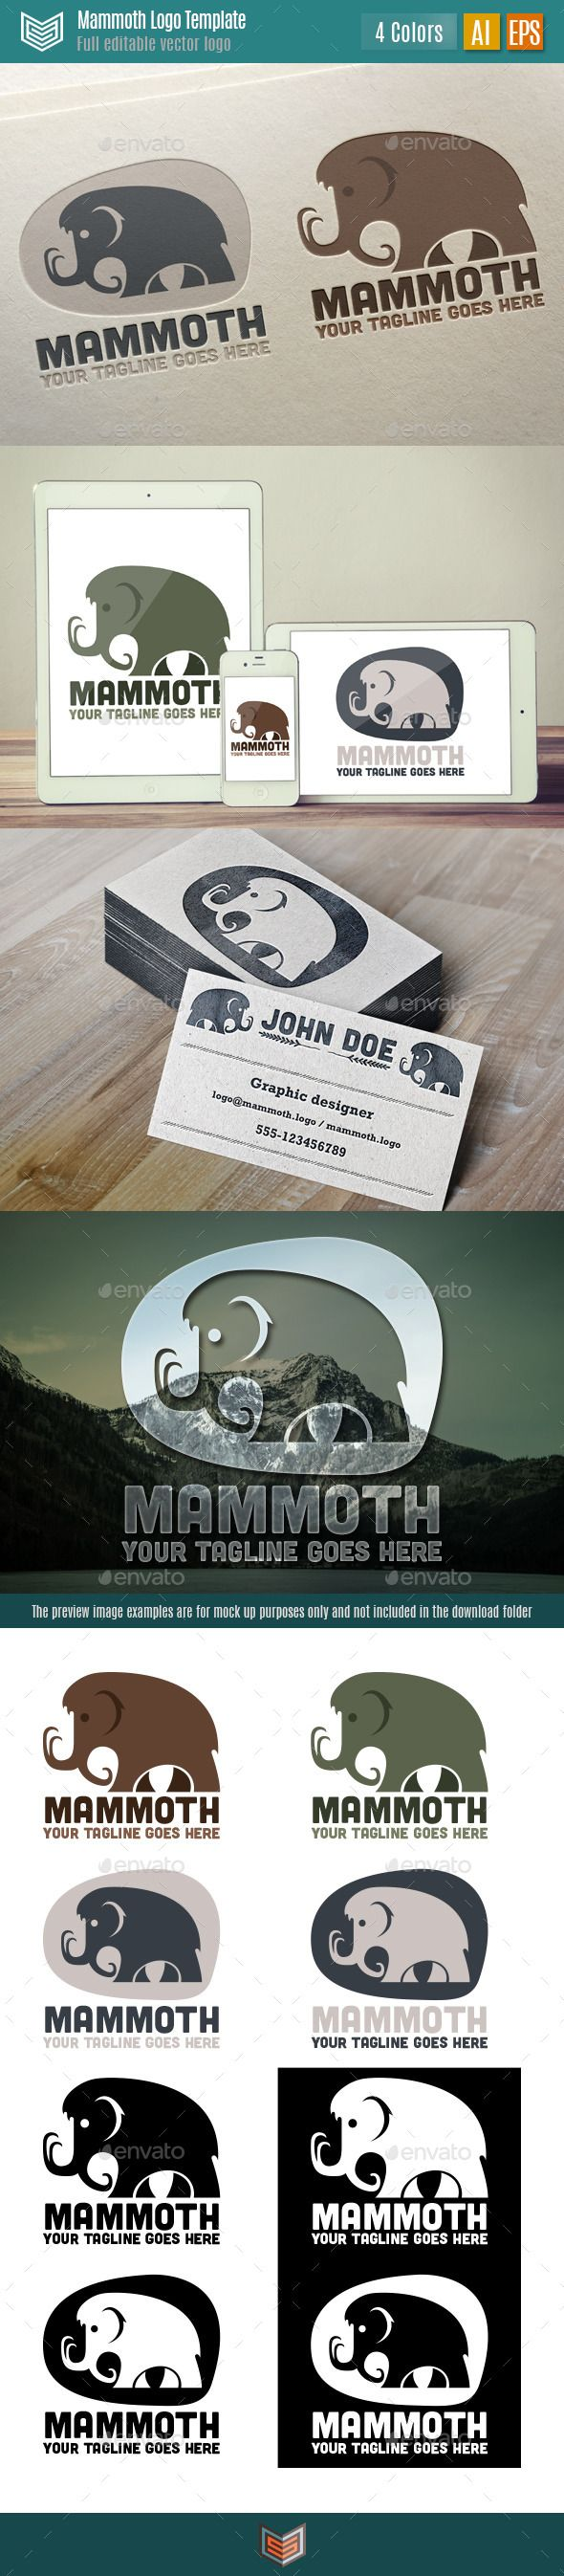 Mammoth Logo — Vector EPS #retro #ice • Available here → https://graphicriver.net/item/mammoth-logo/10736046?ref=pxcr